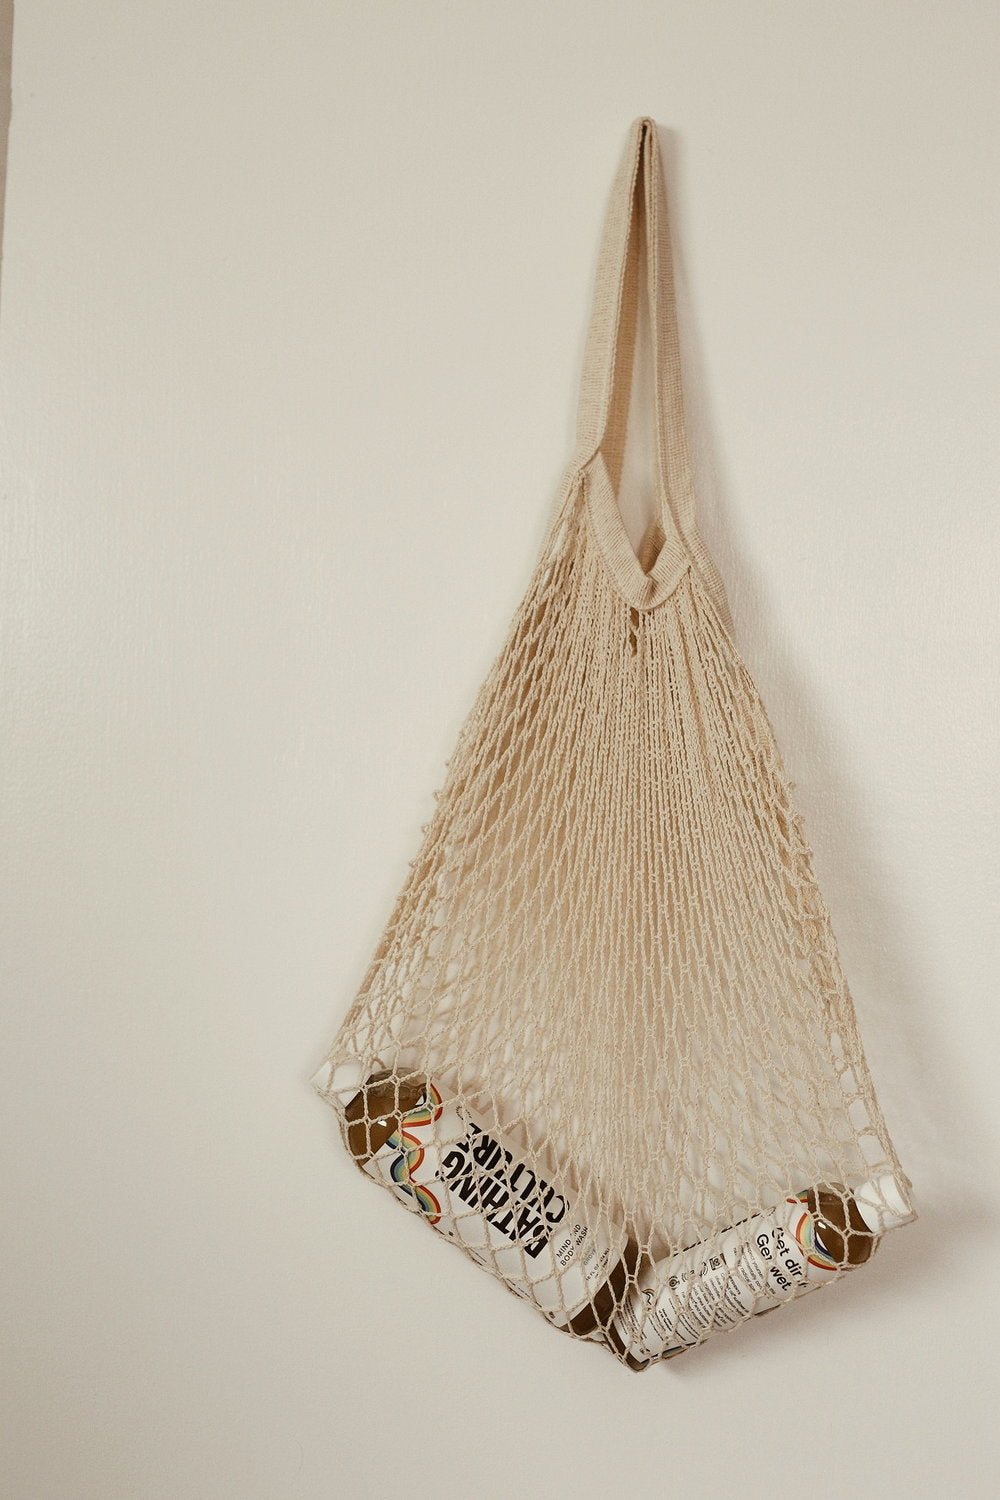 Netted Organic Cotton Market Bag